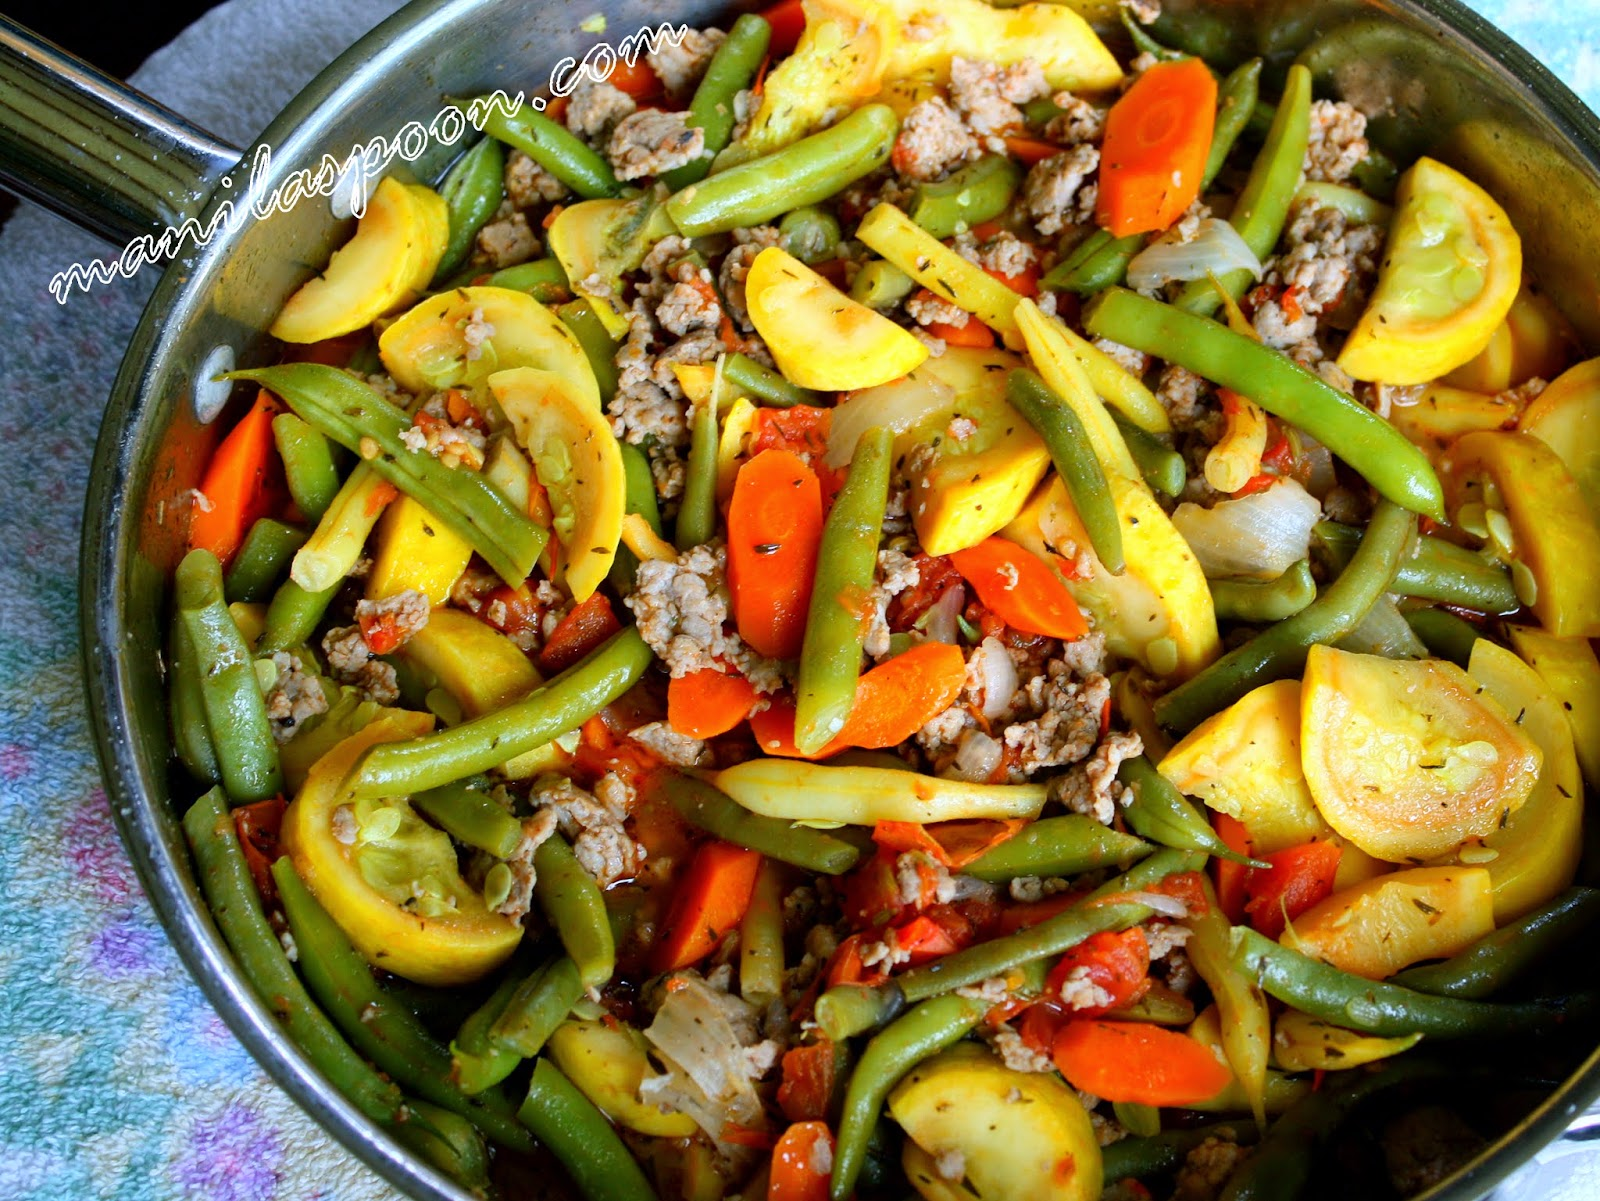 Sautéed Green Beans and Yellow Squash with Italian Sausages